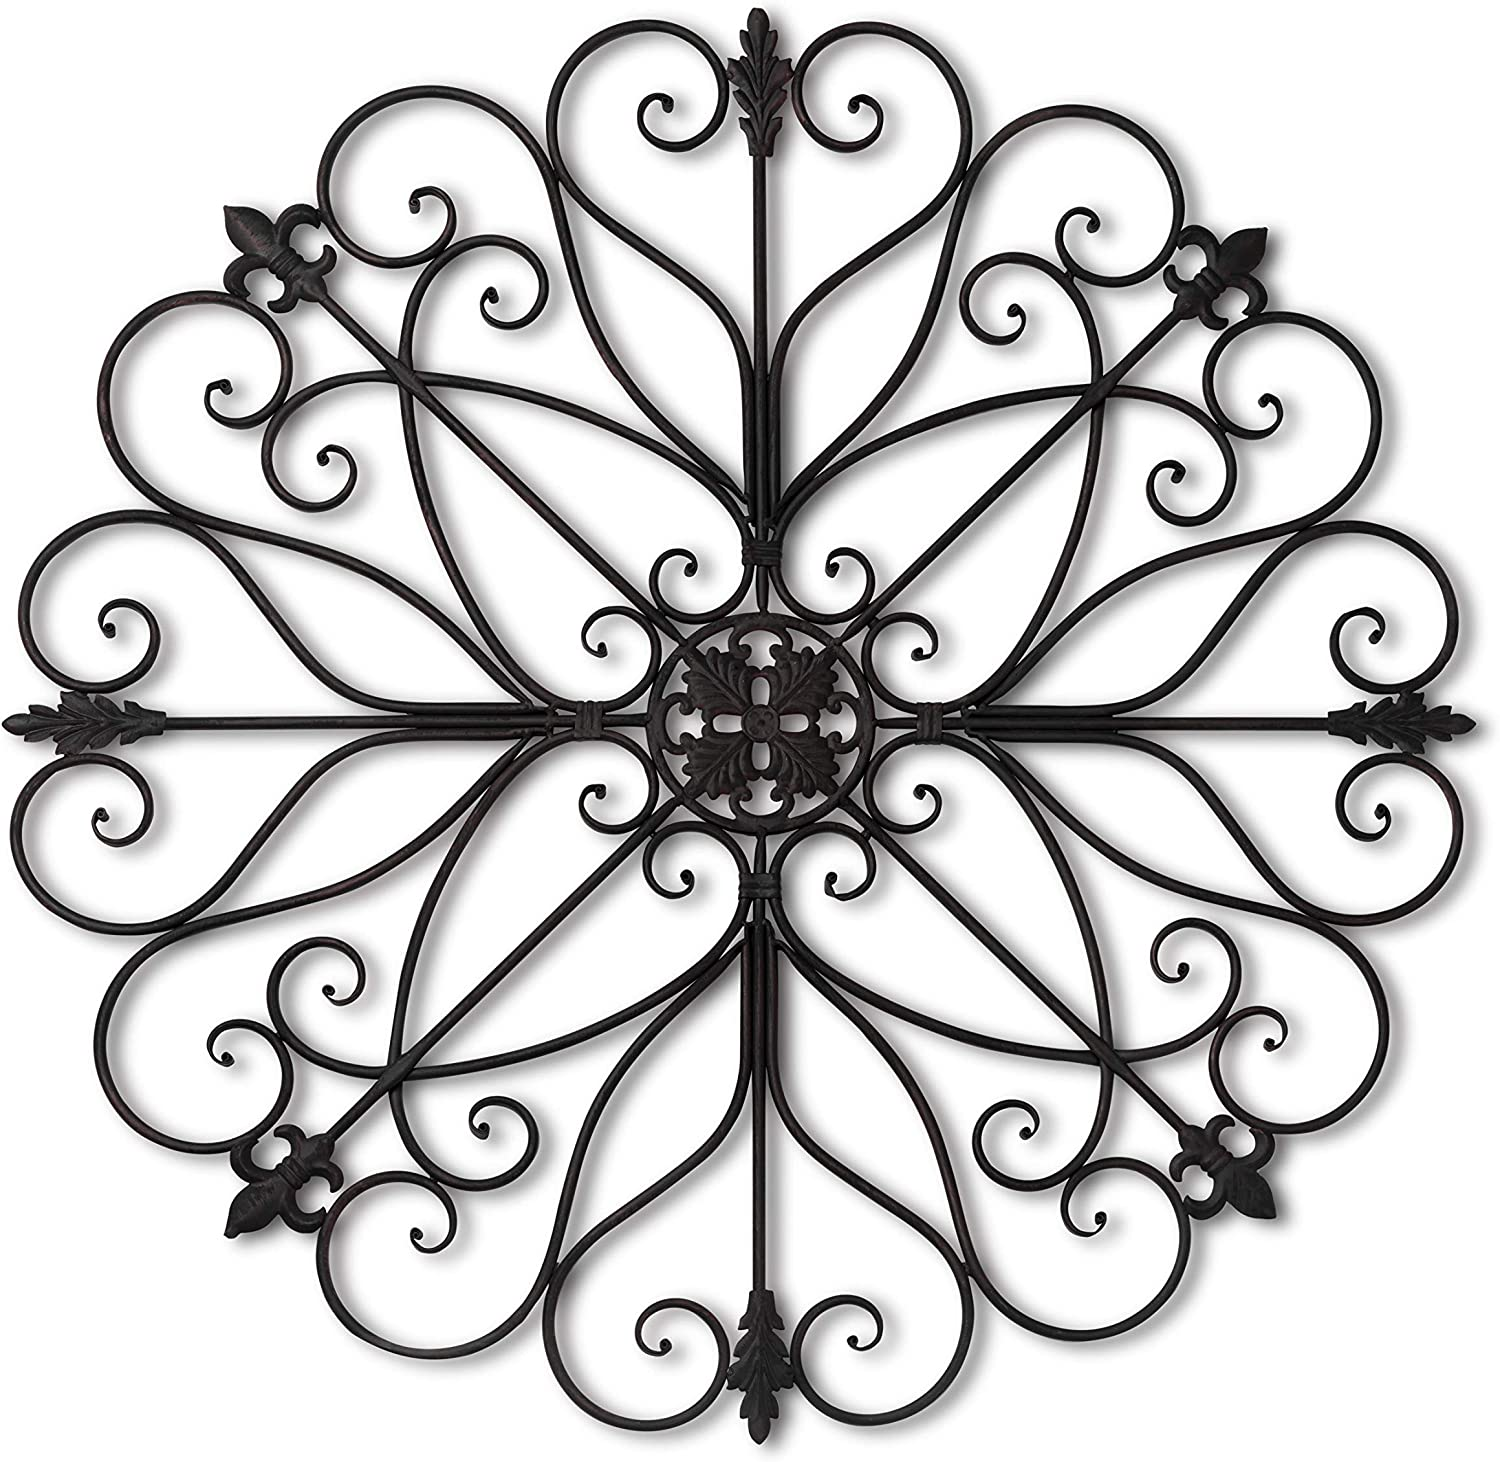 "T.Y. Cooper Wrought Iron 36"" Round Wall Decor"